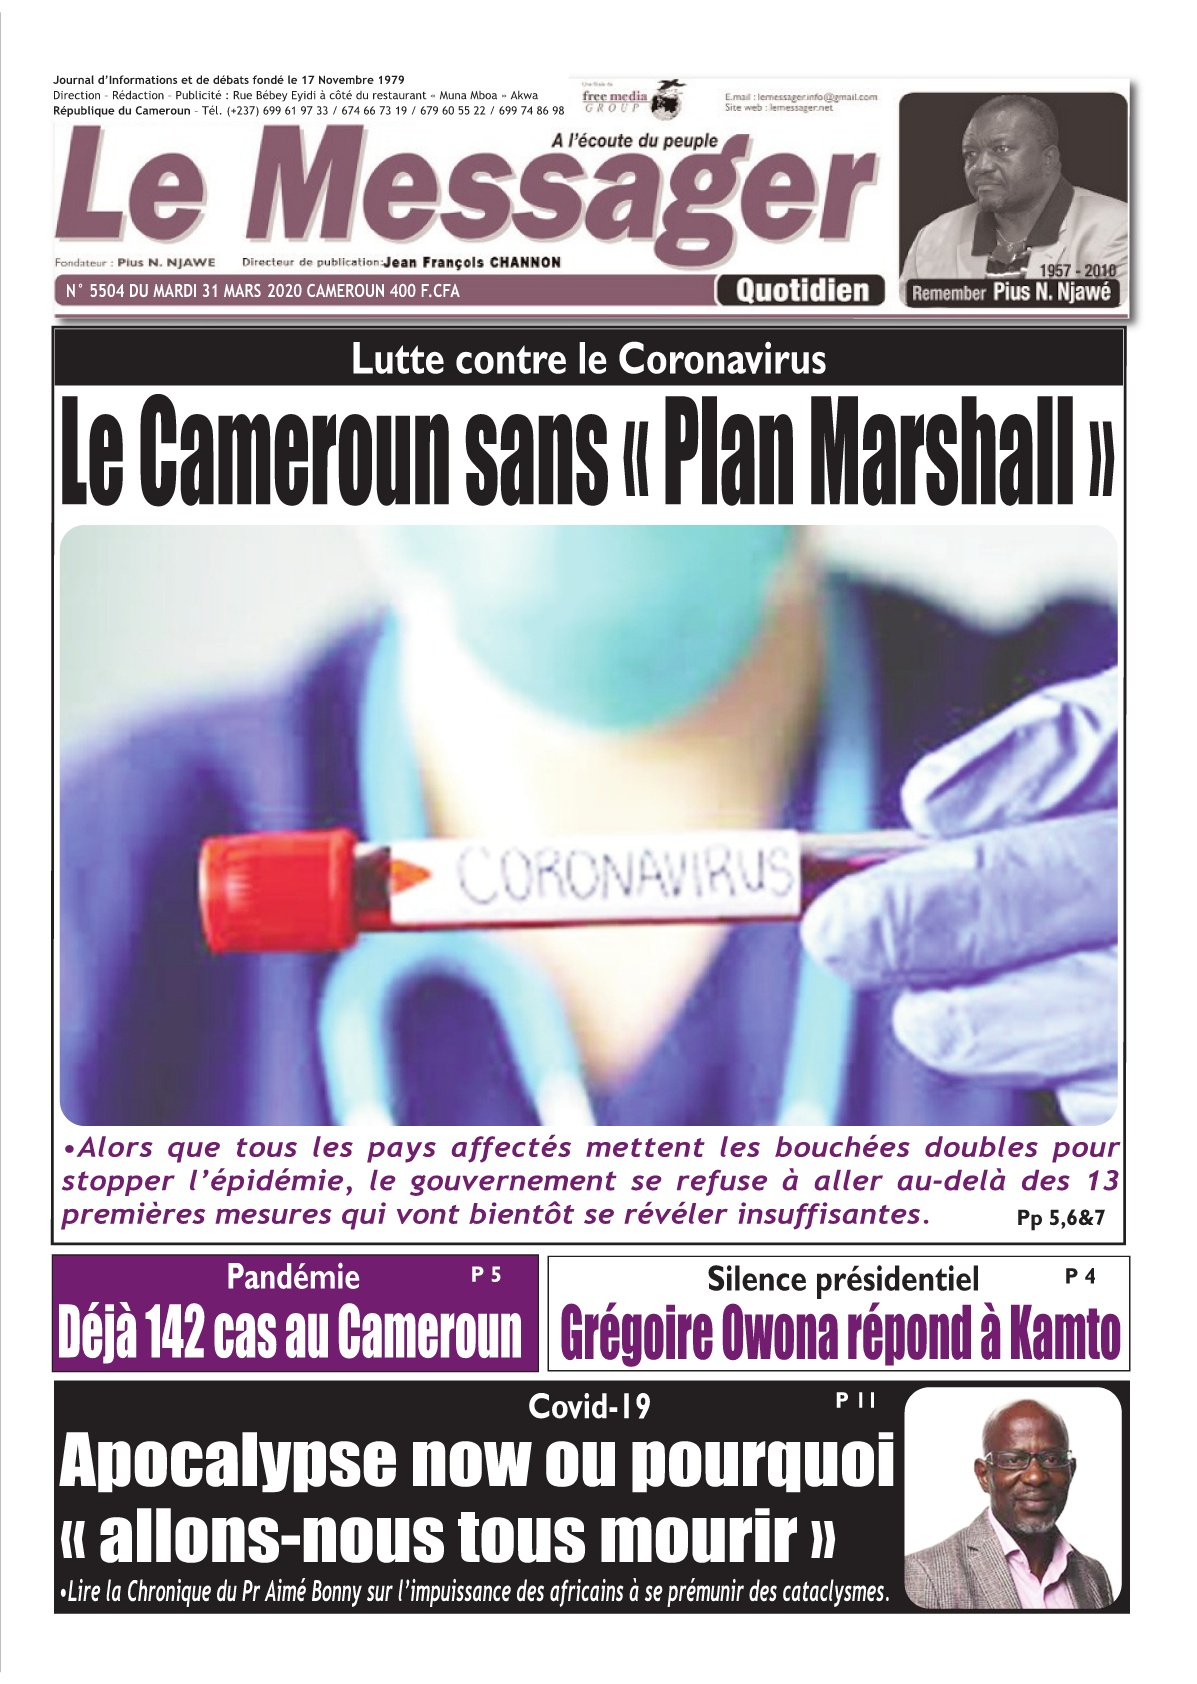 Le Messager - 31/03/2020